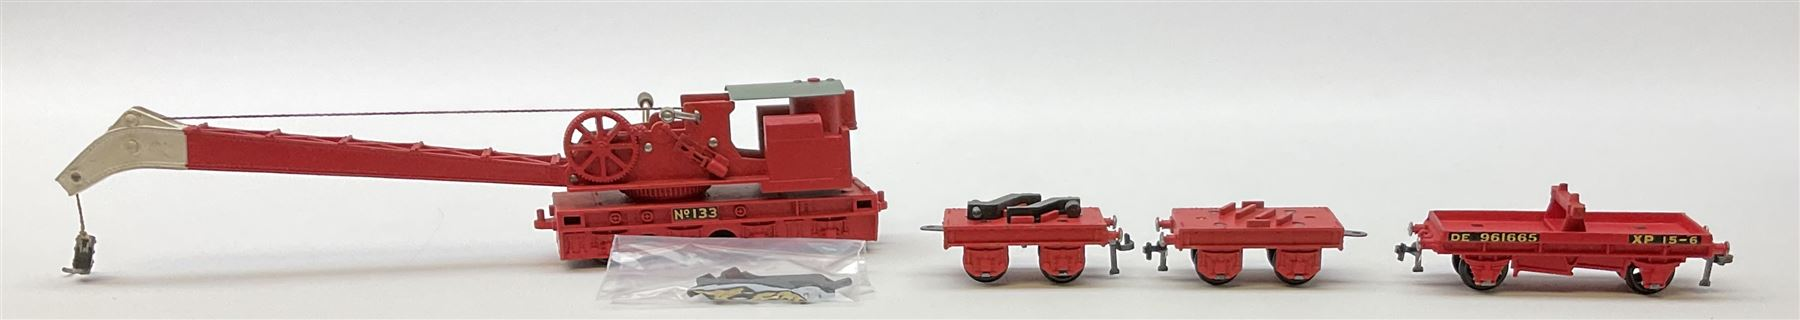 Hornby Dublo - Breakdown Crane No.4062 with screw jacks in plain red box with end label; D1 Girder B - Image 3 of 11